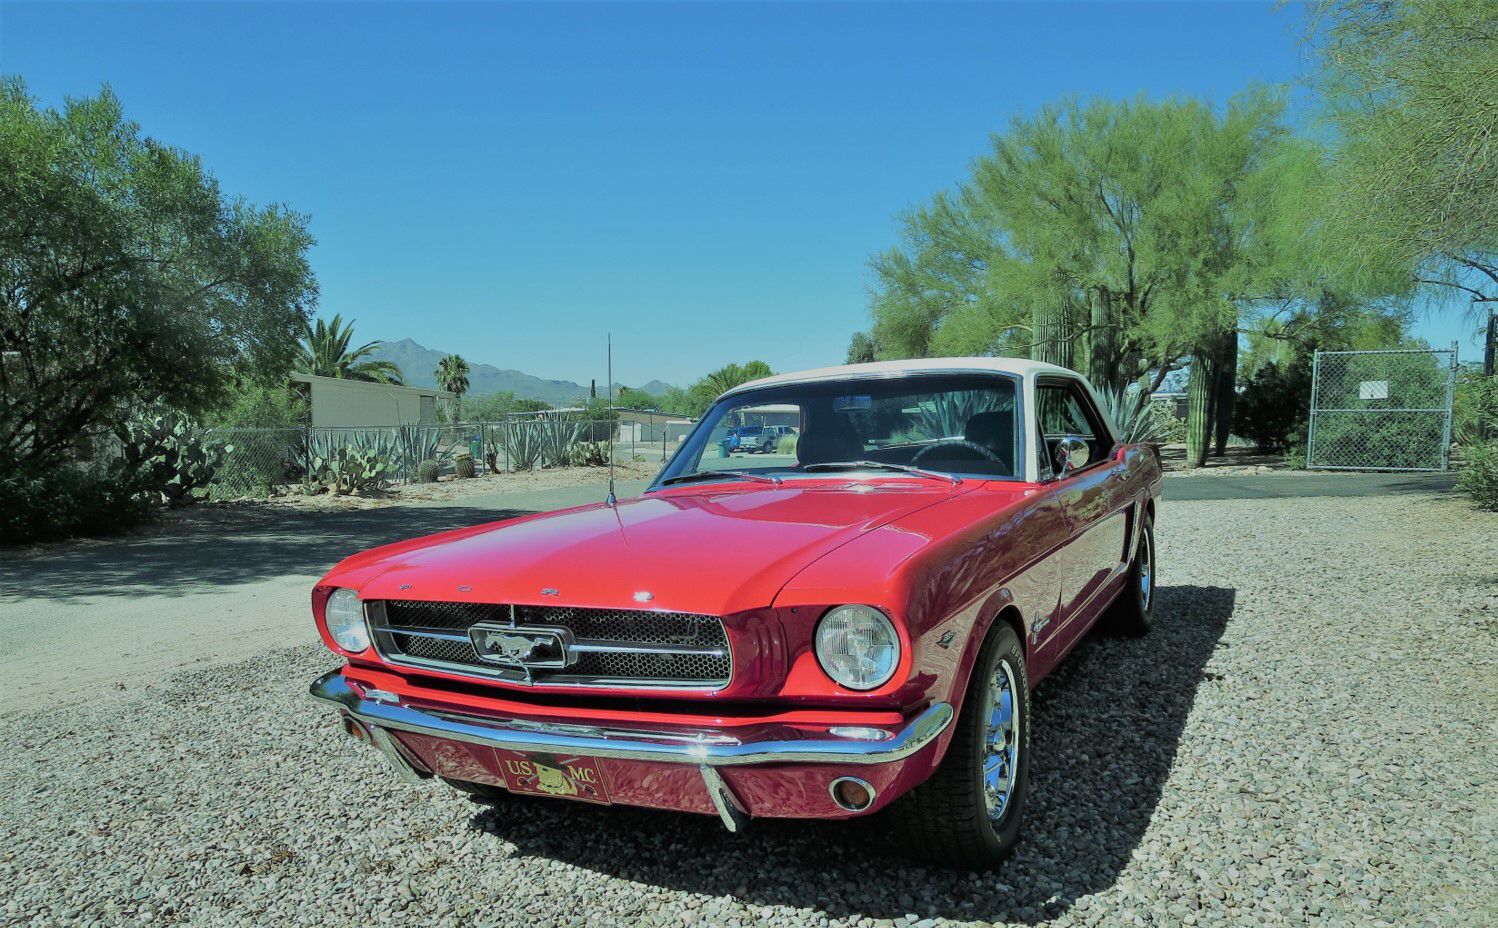 1965 Mustang Price >> 1965 Ford Mustang Values Hagerty Valuation Tool